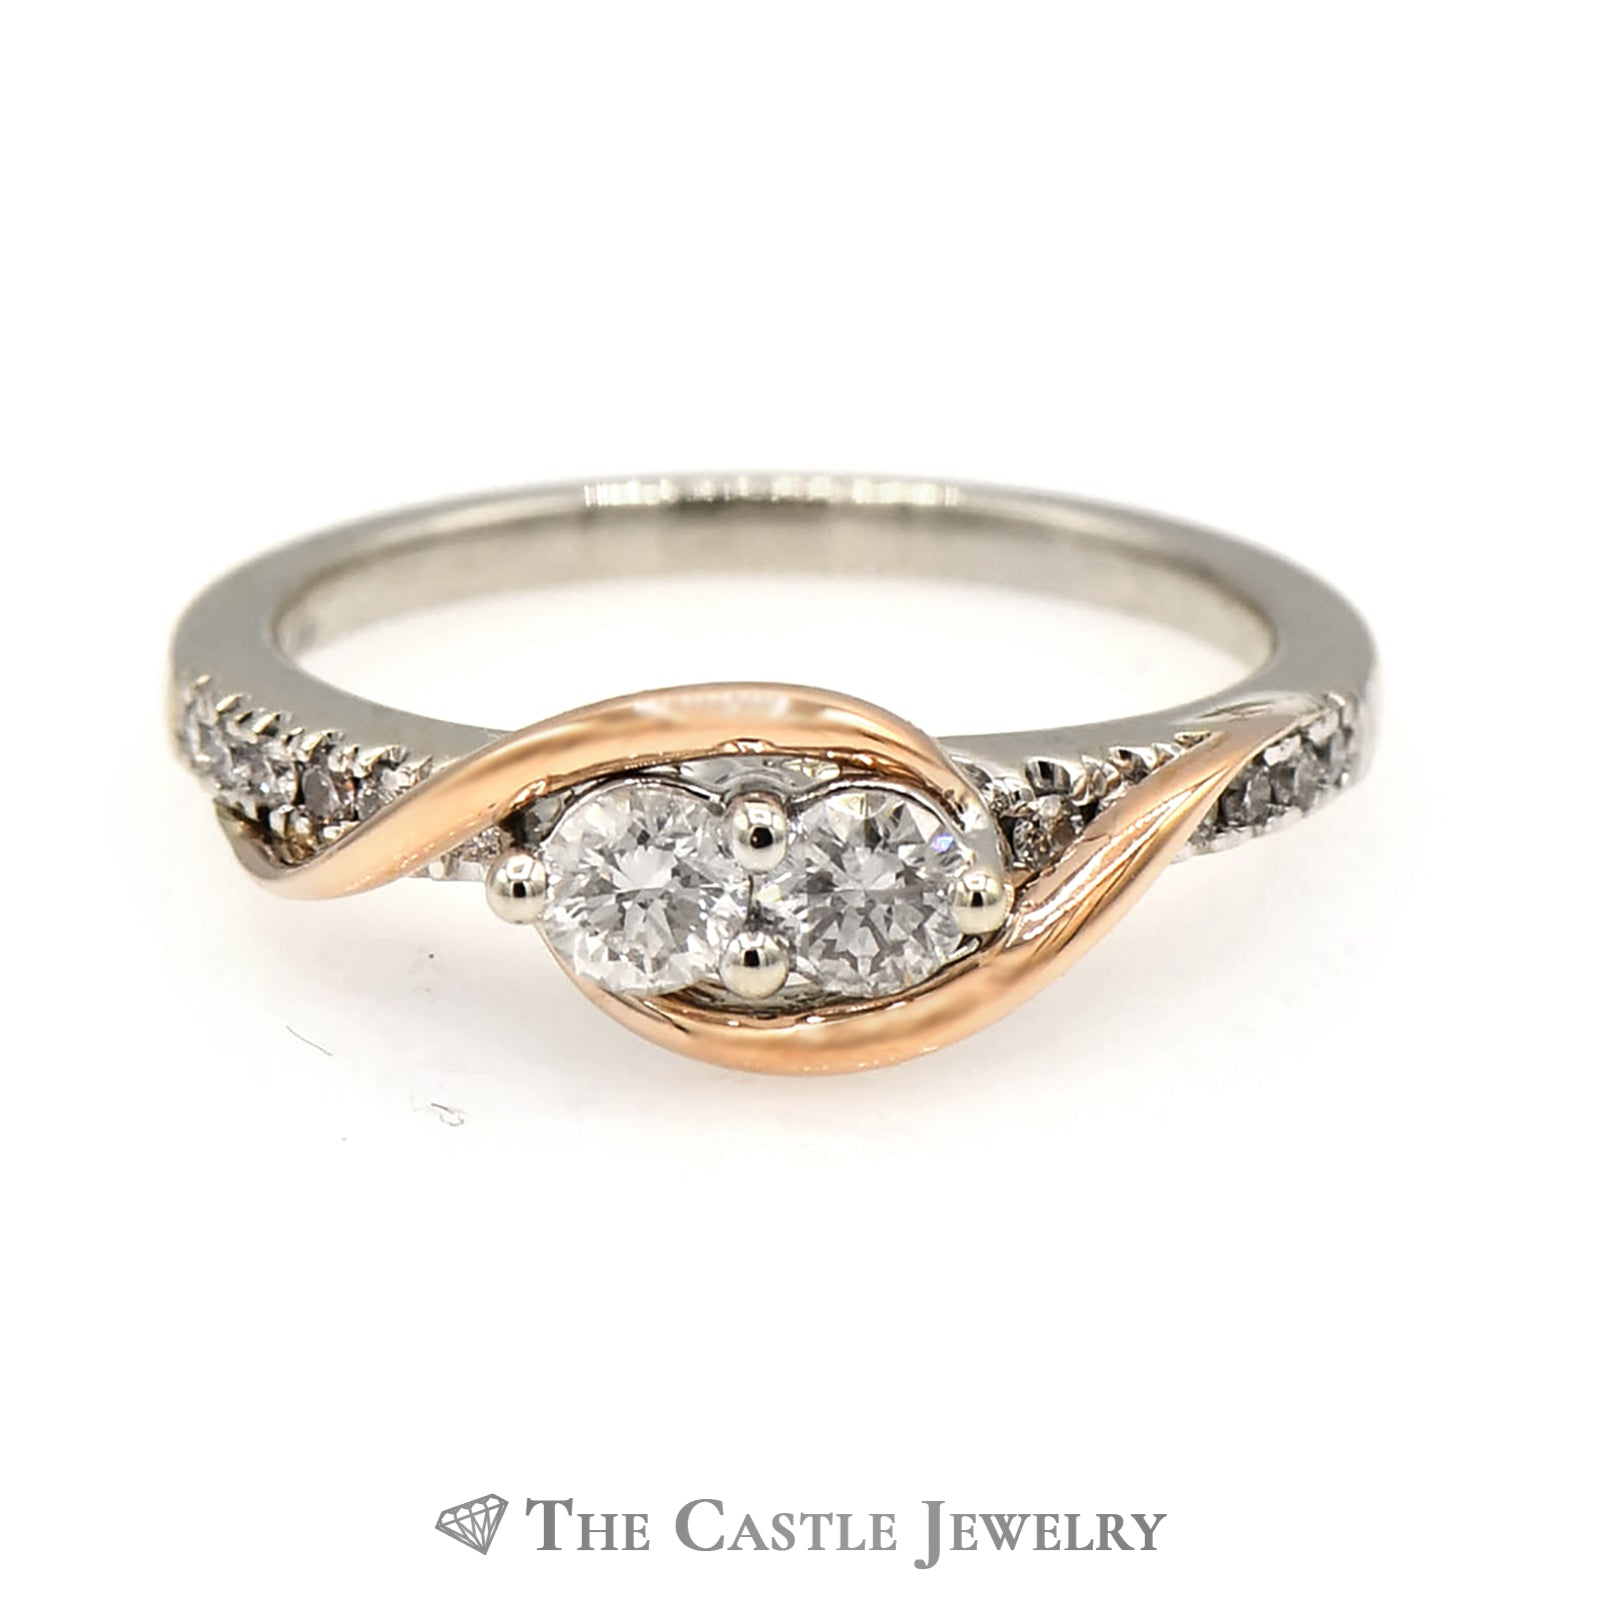 Ever Us 2 Diamond Ring with Rose Gold Accented Diamond Mounting